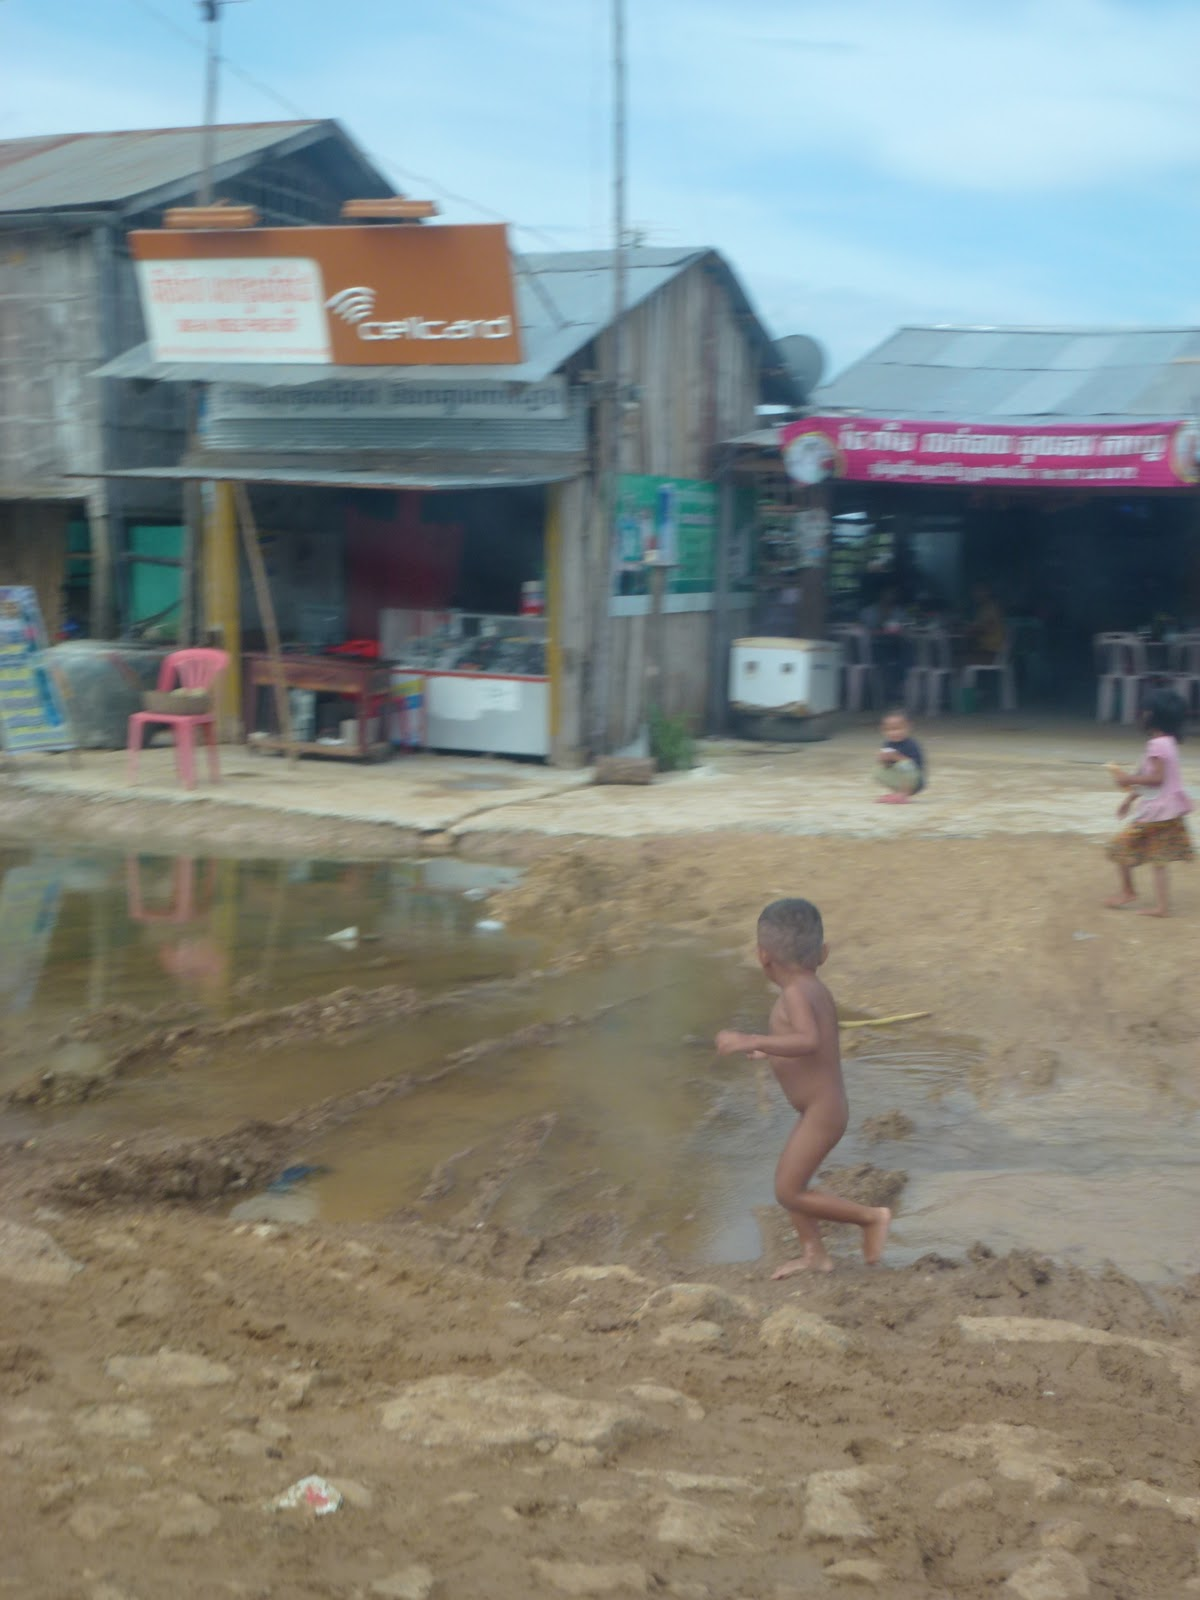 Naked cambodian kids I am remembering the chestnut brown mud with the gray, brown standing  water, the half naked or naked children in the mud ...